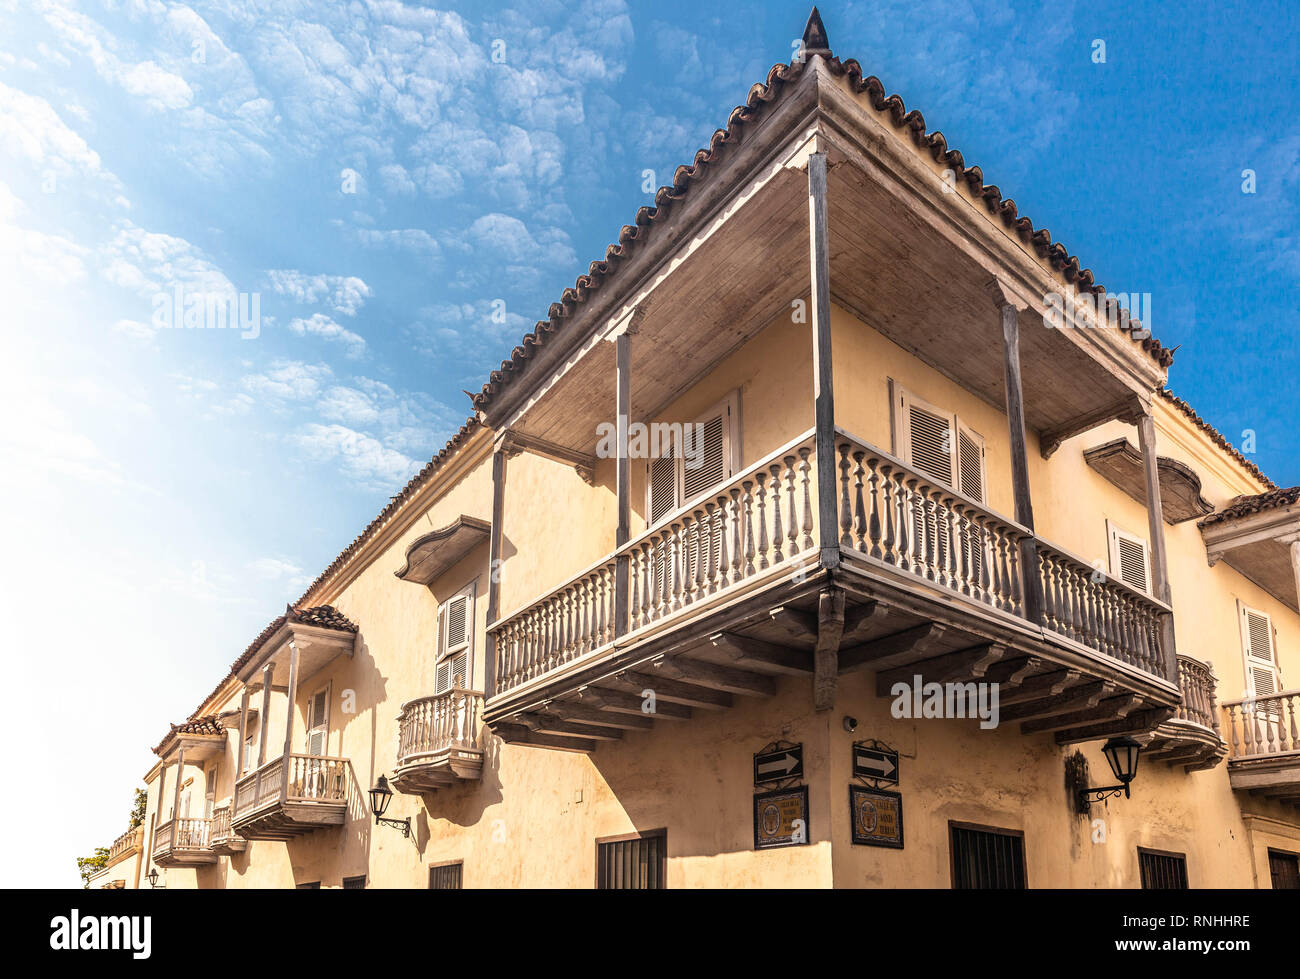 Corner house and balcony, Cartagena de Indias, Colombia. - Stock Image